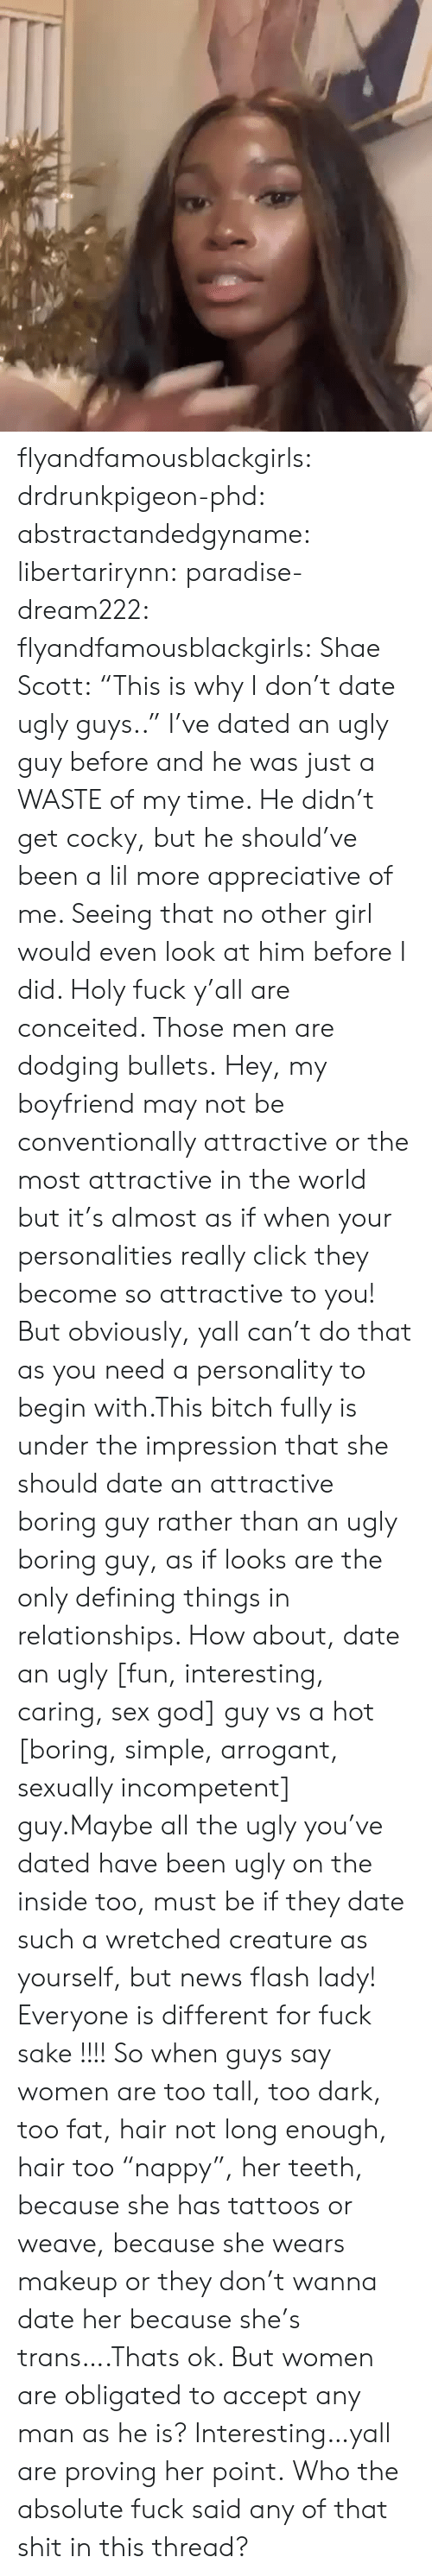 "Weave: flyandfamousblackgirls:  drdrunkpigeon-phd:  abstractandedgyname:  libertarirynn:  paradise-dream222:  flyandfamousblackgirls:  Shae Scott: ""This is why I don't date ugly guys..""  I've dated an ugly guy before and he was just a WASTE of my time. He didn't get cocky, but he should've been a lil more appreciative of me. Seeing that no other girl would even look at him before I did.   Holy fuck y'all are conceited. Those men are dodging bullets.    Hey, my boyfriend may not be conventionally attractive or the most attractive in the world but it's almost as if when your personalities really click they become so attractive to you! But obviously, yall can't do that as you need a personality to begin with.This bitch fully is under the impression that she should date an attractive boring guy rather than an ugly boring guy, as if looks are the only defining things in relationships. How about, date an ugly [fun, interesting, caring, sex god] guy vs a hot [boring, simple, arrogant, sexually incompetent] guy.Maybe all the ugly you've dated have been ugly on the inside too, must be if they date such a wretched creature as yourself, but news flash lady! Everyone is different for fuck sake !!!!  So when guys say women are too tall, too dark, too fat, hair not long enough, hair too ""nappy"", her teeth, because she has tattoos or weave, because she wears makeup or they don't wanna date her because she's trans….Thats ok. But women are obligated to accept any man as he is? Interesting…yall are proving her point.  Who the absolute fuck said any of that shit in this thread?"